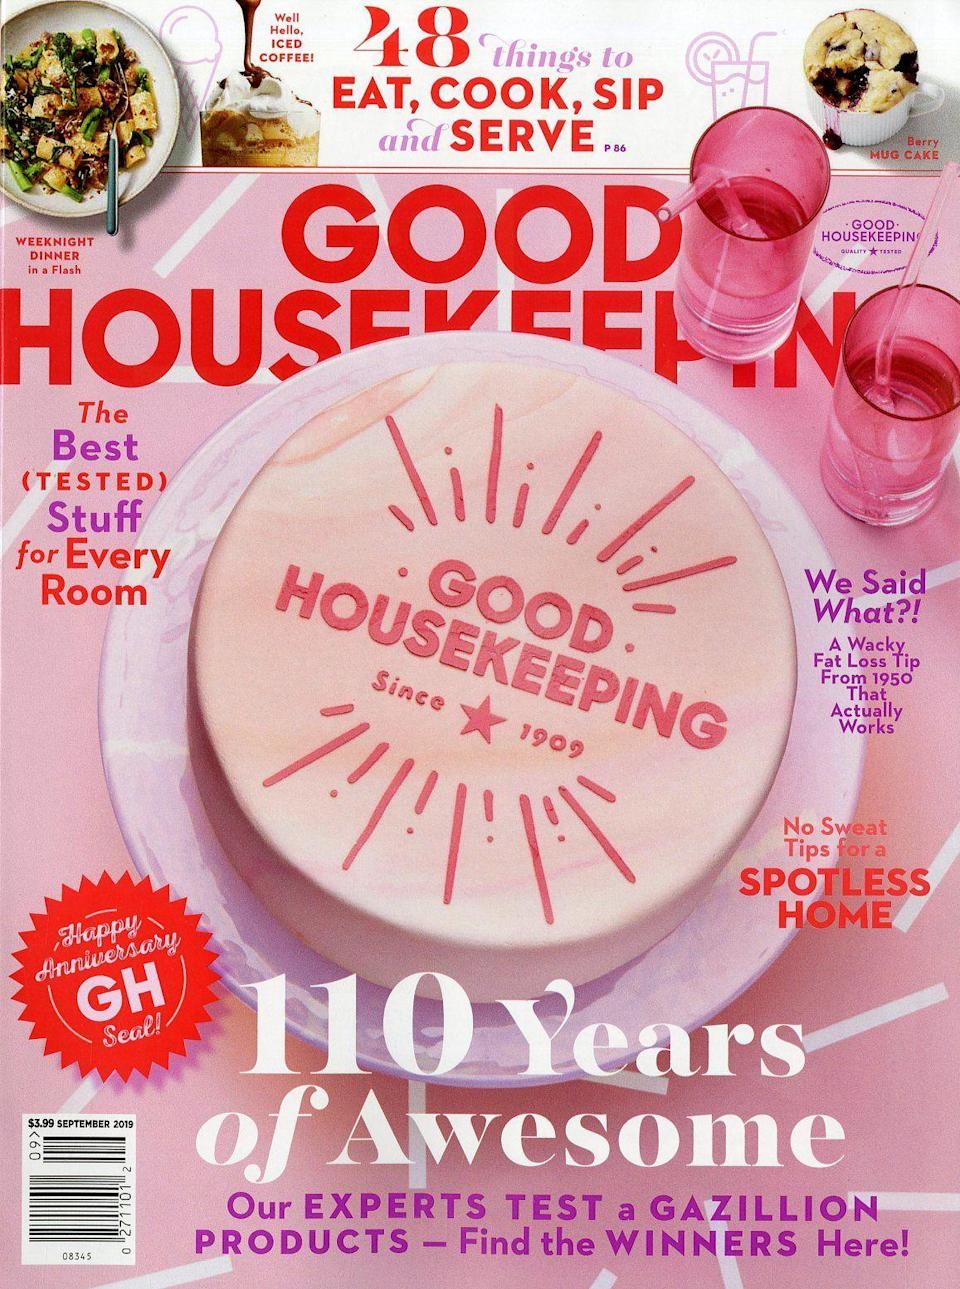 """<p><strong>Good Housekeeping</strong></p><p>amazon.com</p><p><strong>$6.00</strong></p><p><a href=""""https://amzn.to/3yZiqW6"""" rel=""""nofollow noopener"""" target=""""_blank"""" data-ylk=""""slk:Shop Now"""" class=""""link rapid-noclick-resp"""">Shop Now</a></p><p>Gift them all the fun and delicious goodness of <em>Good Housekeeping</em> with this limited-time deal where you can score 10 issues of the magazine for the price of a vanilla latte. </p>"""